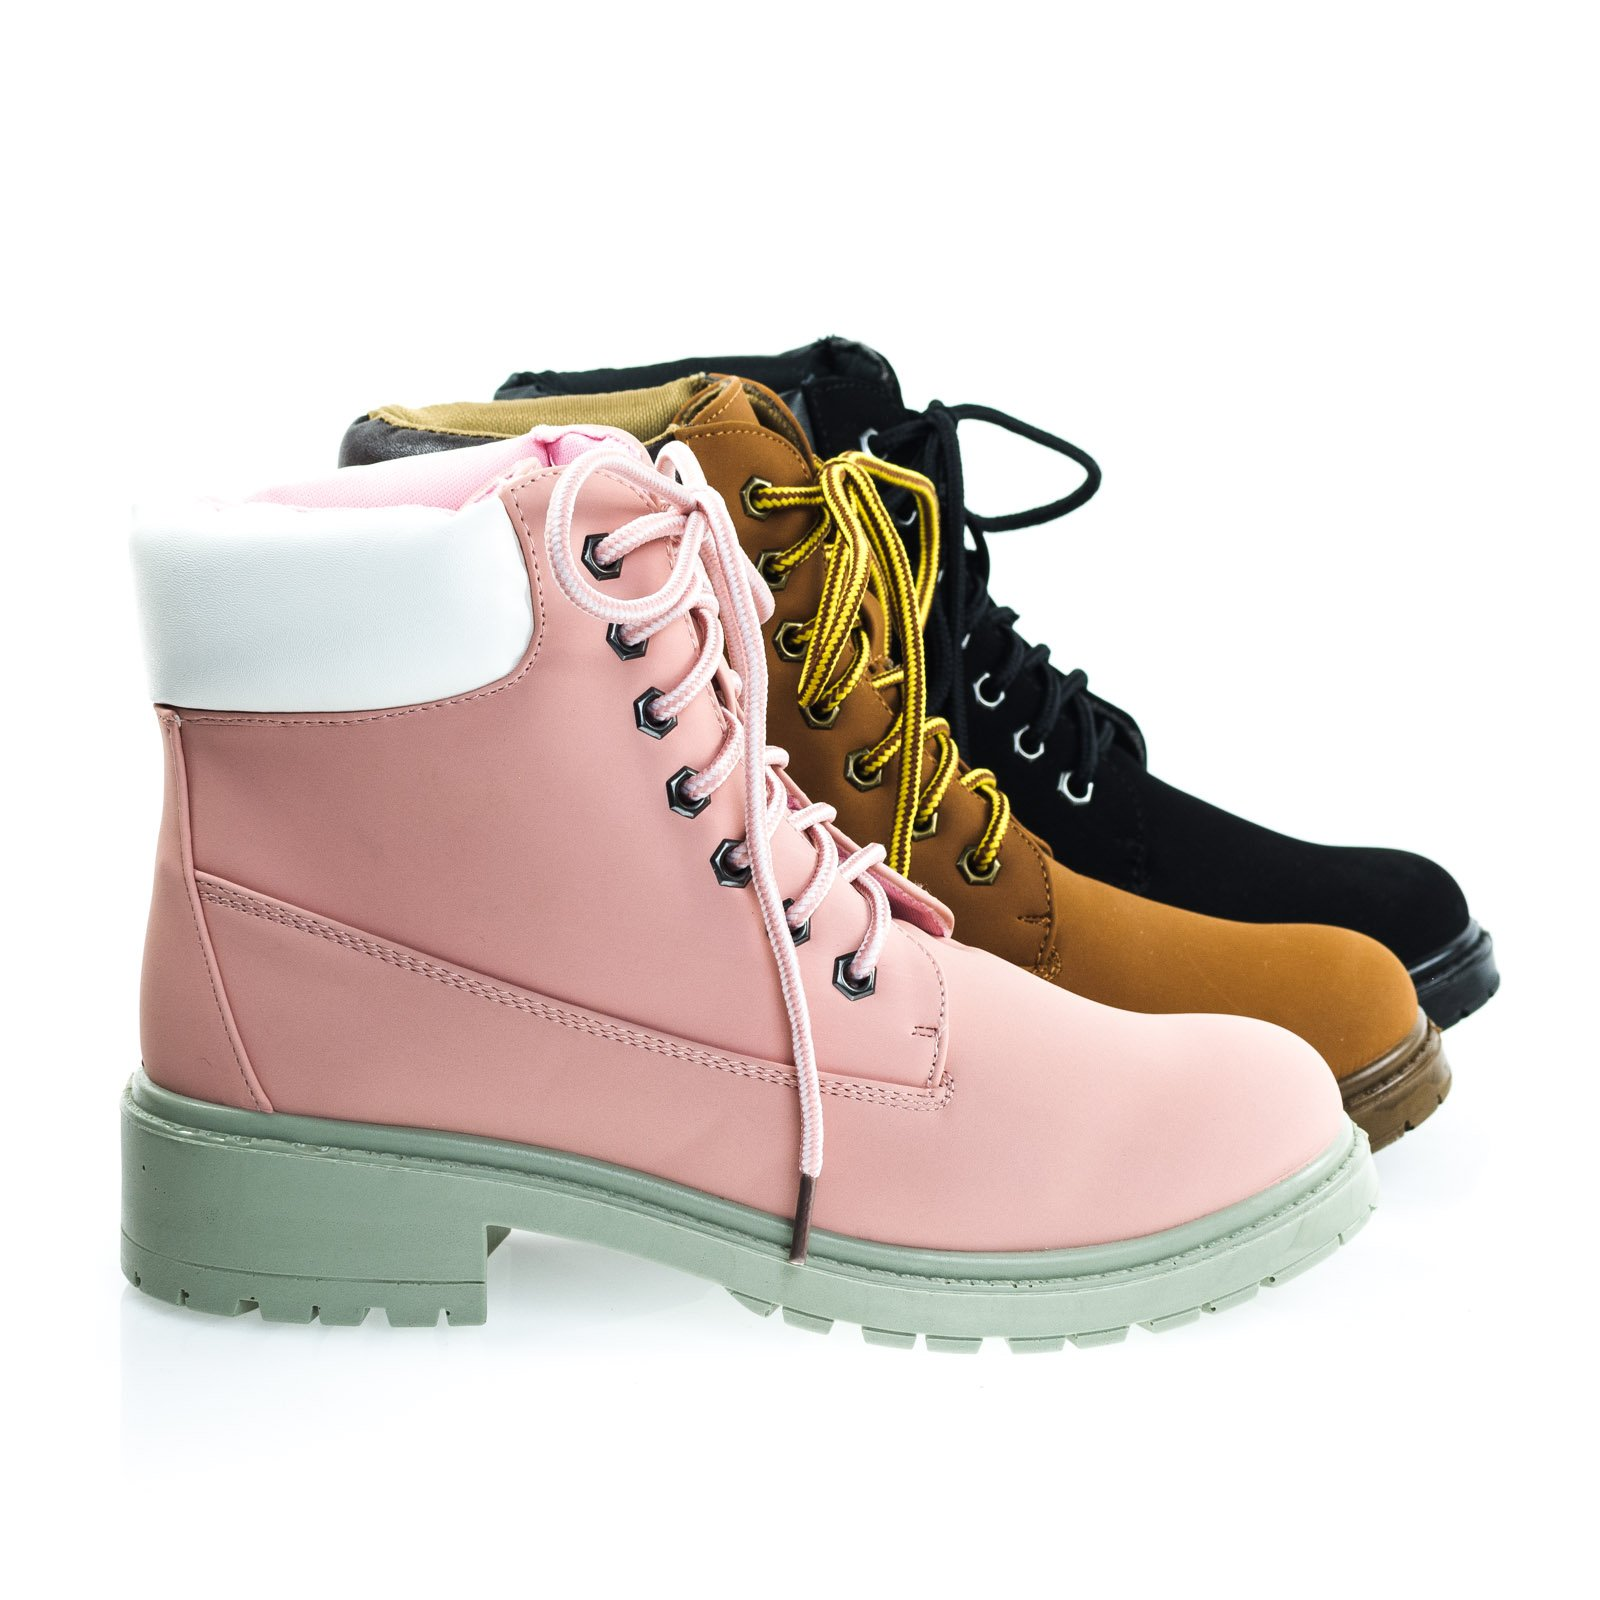 Trekking01 Solid Pink Super Light Weight Fashion Work Boots w Lug Sole, Padded Collar -9